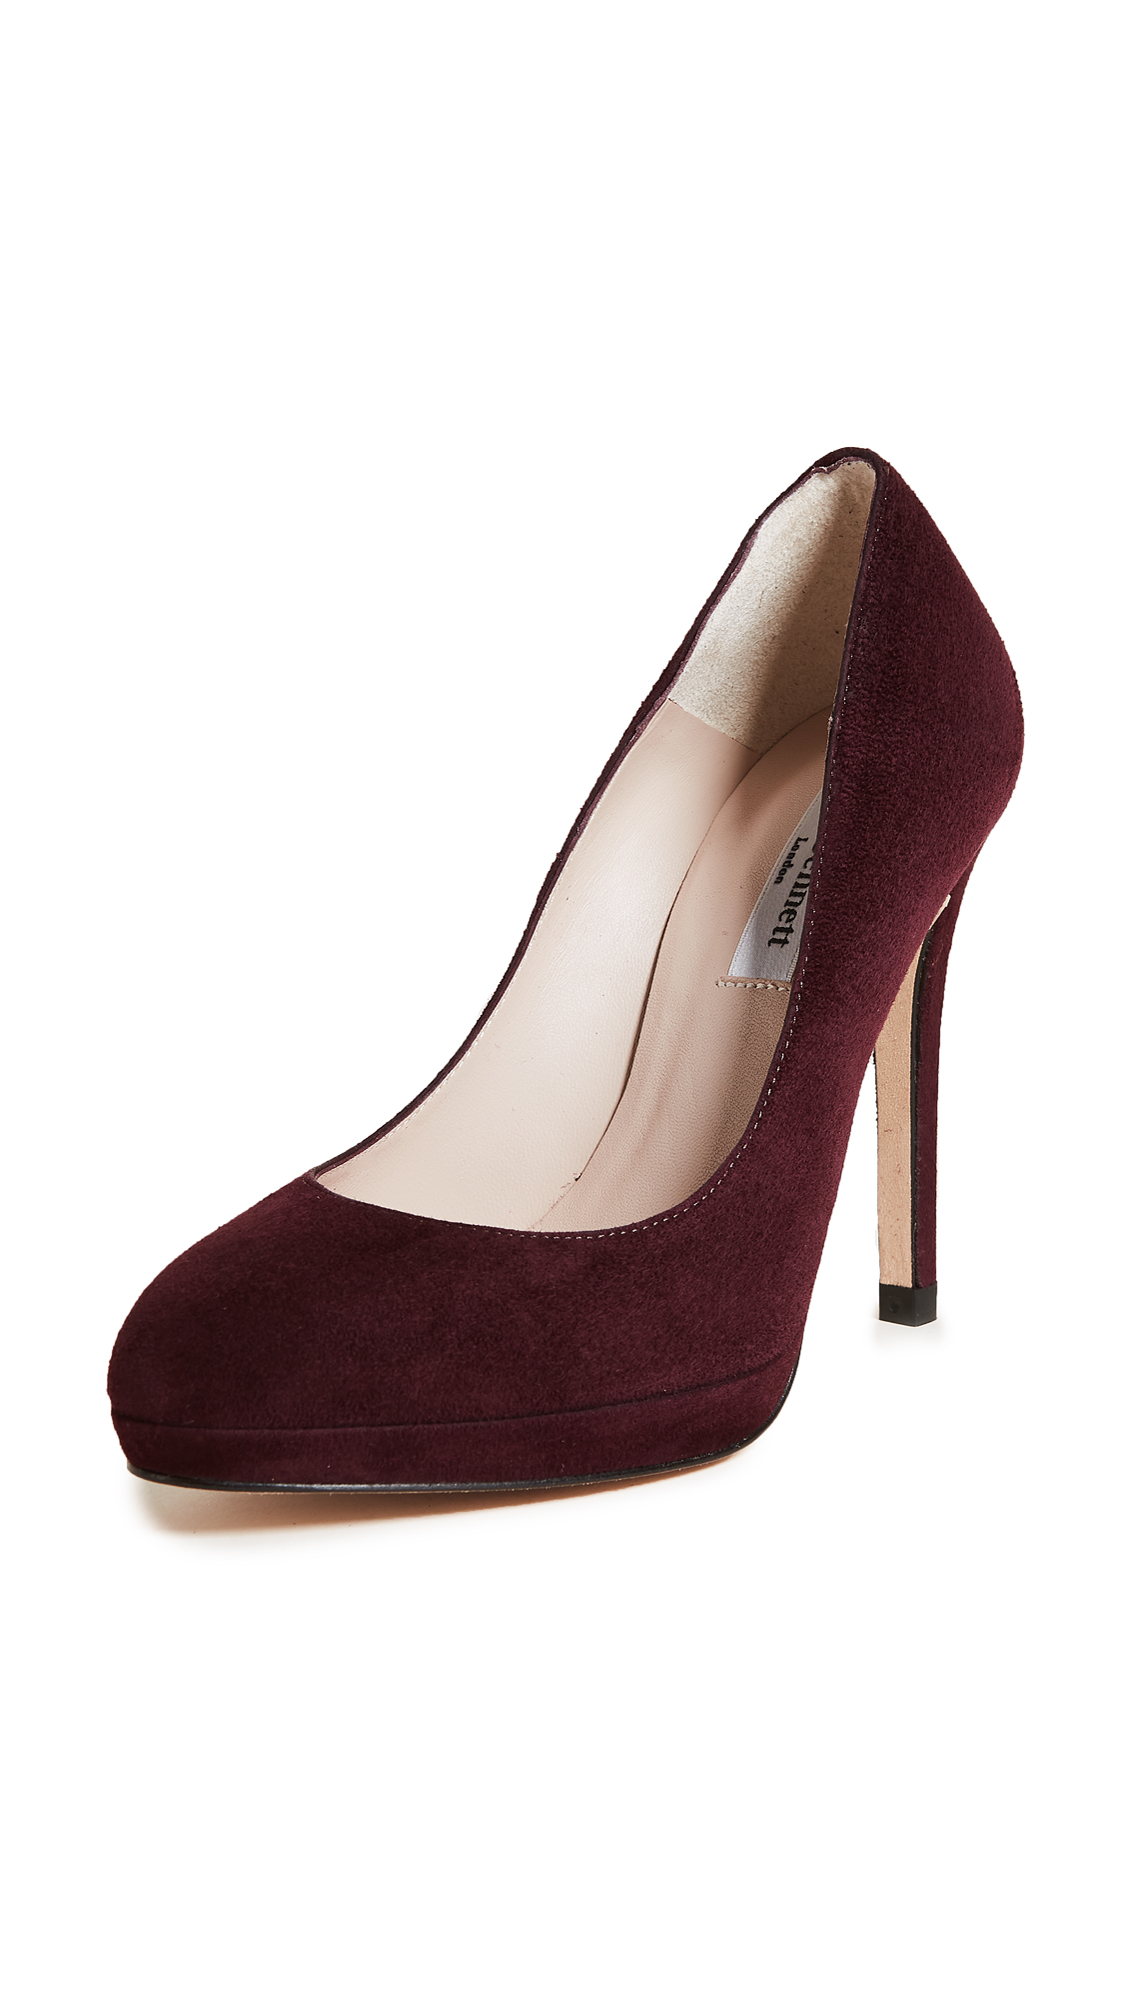 L.K. Bennett New Sledge Pumps - Oxblood